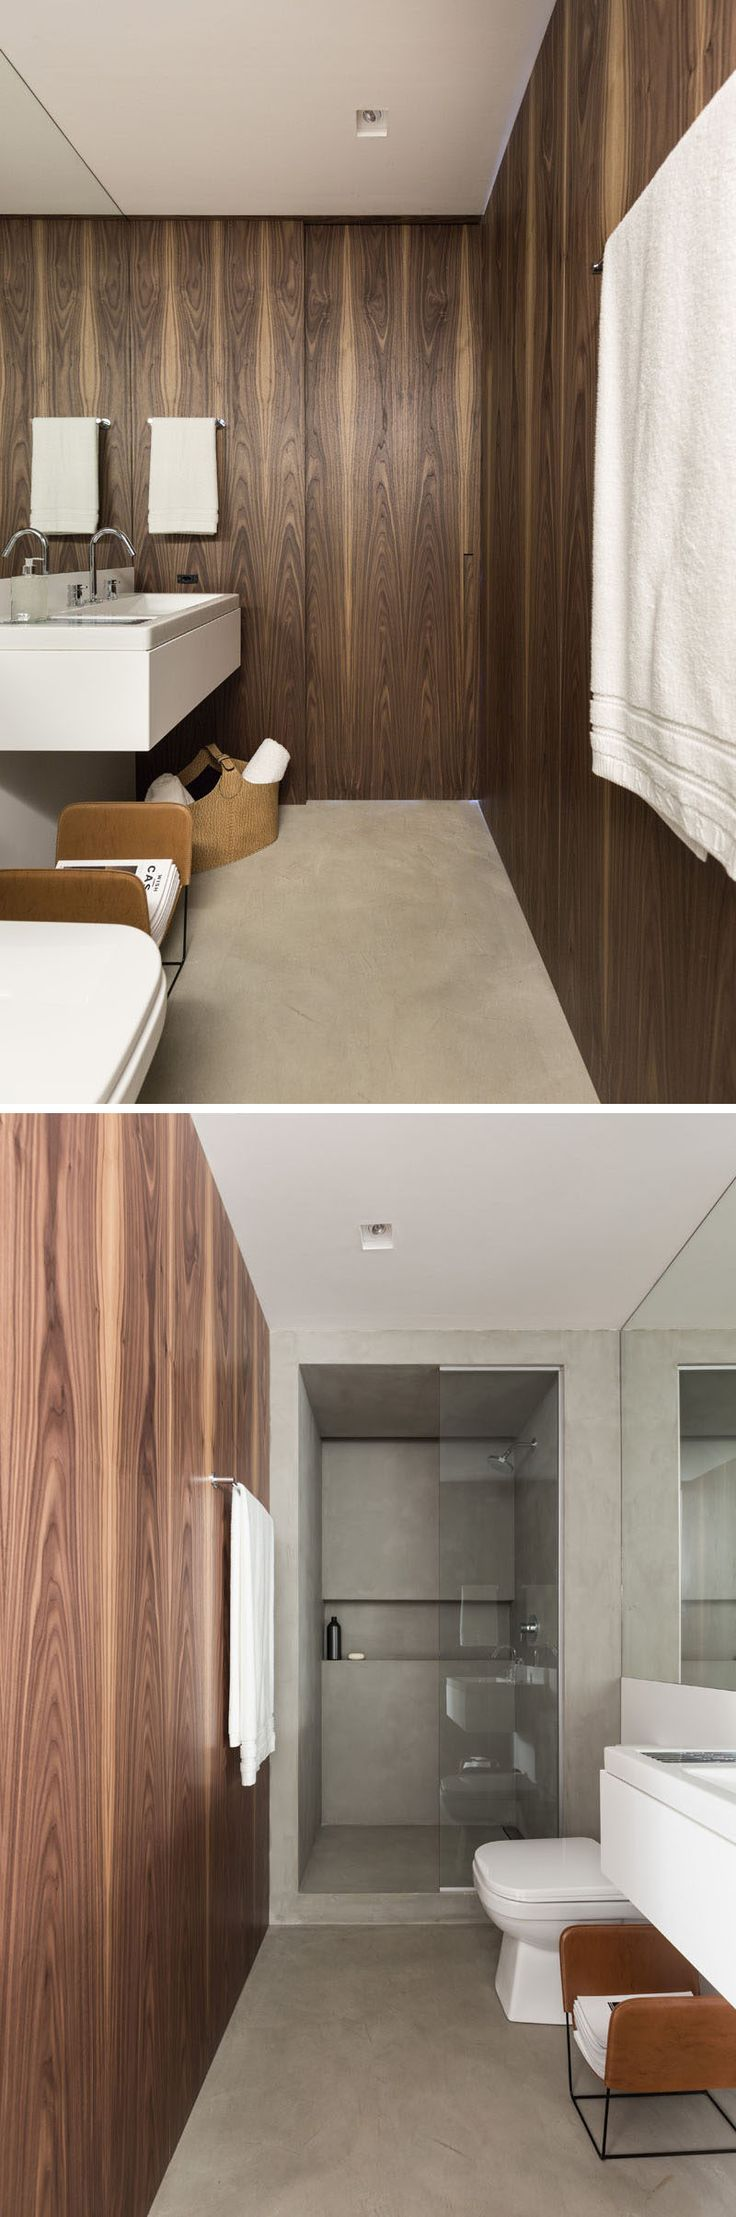 apartments inside bathroom. This 430 Square Foot Apartment Makes The Most Of Its Small Layout 409 best Bathroom images on Pinterest  layout